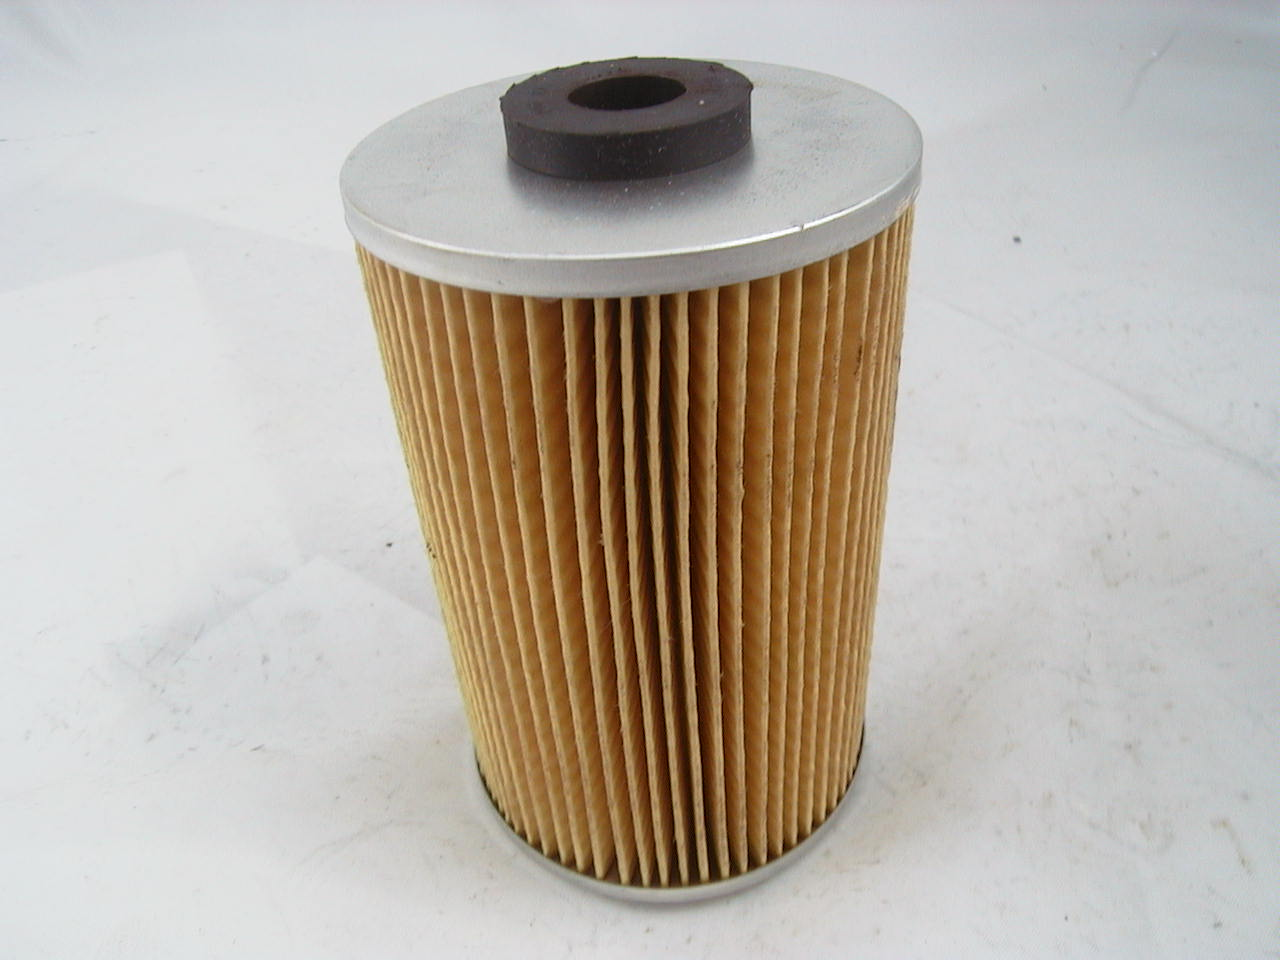 Travel Kansas City Jeep Chrysler Dodge Ram Dealership Wrangler Fuel Filter Replacement